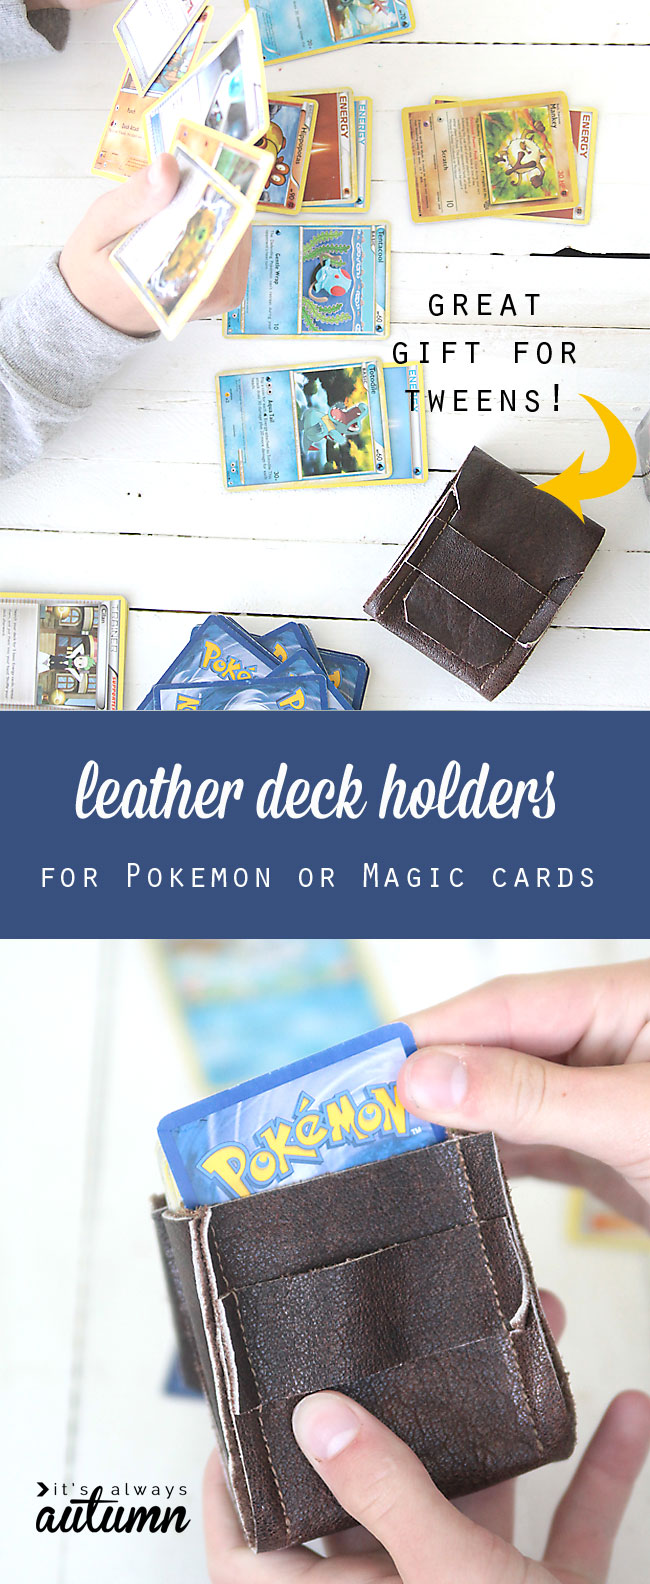 kids playing with pokemon cards; DIY leather deck holder for cards